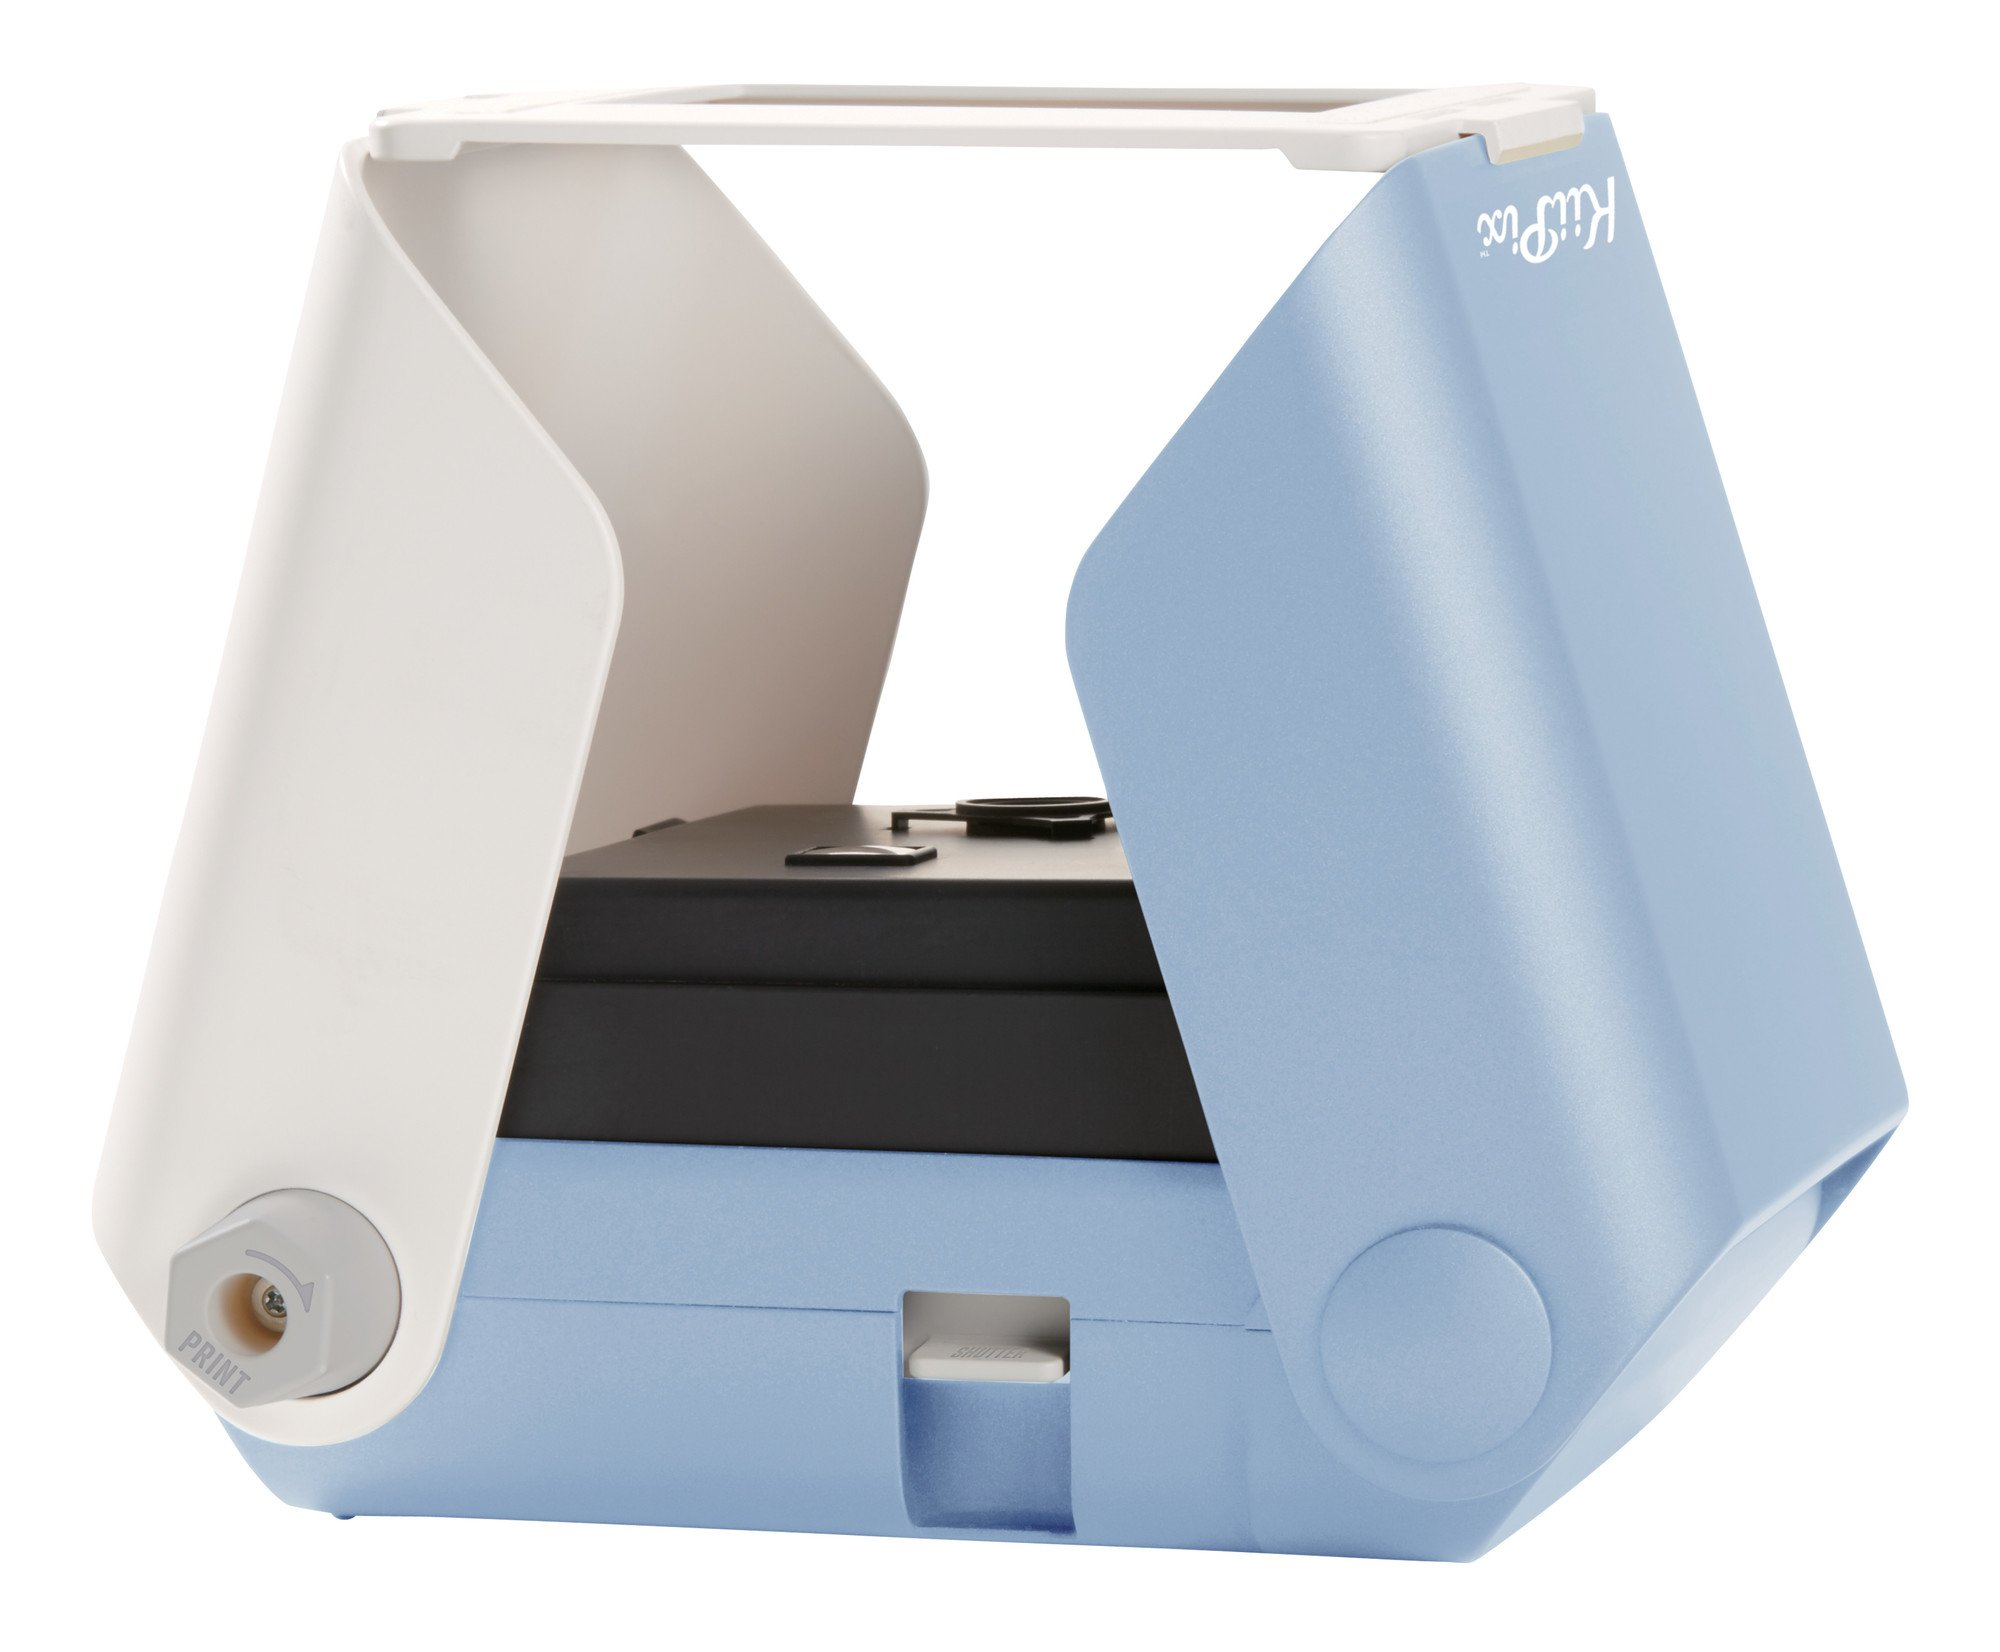 KiiPix Smartphone Picture Printer, Blue | Instantly Print Fun, Retro-Style Photos | Portable Photo Printer by KiiPix